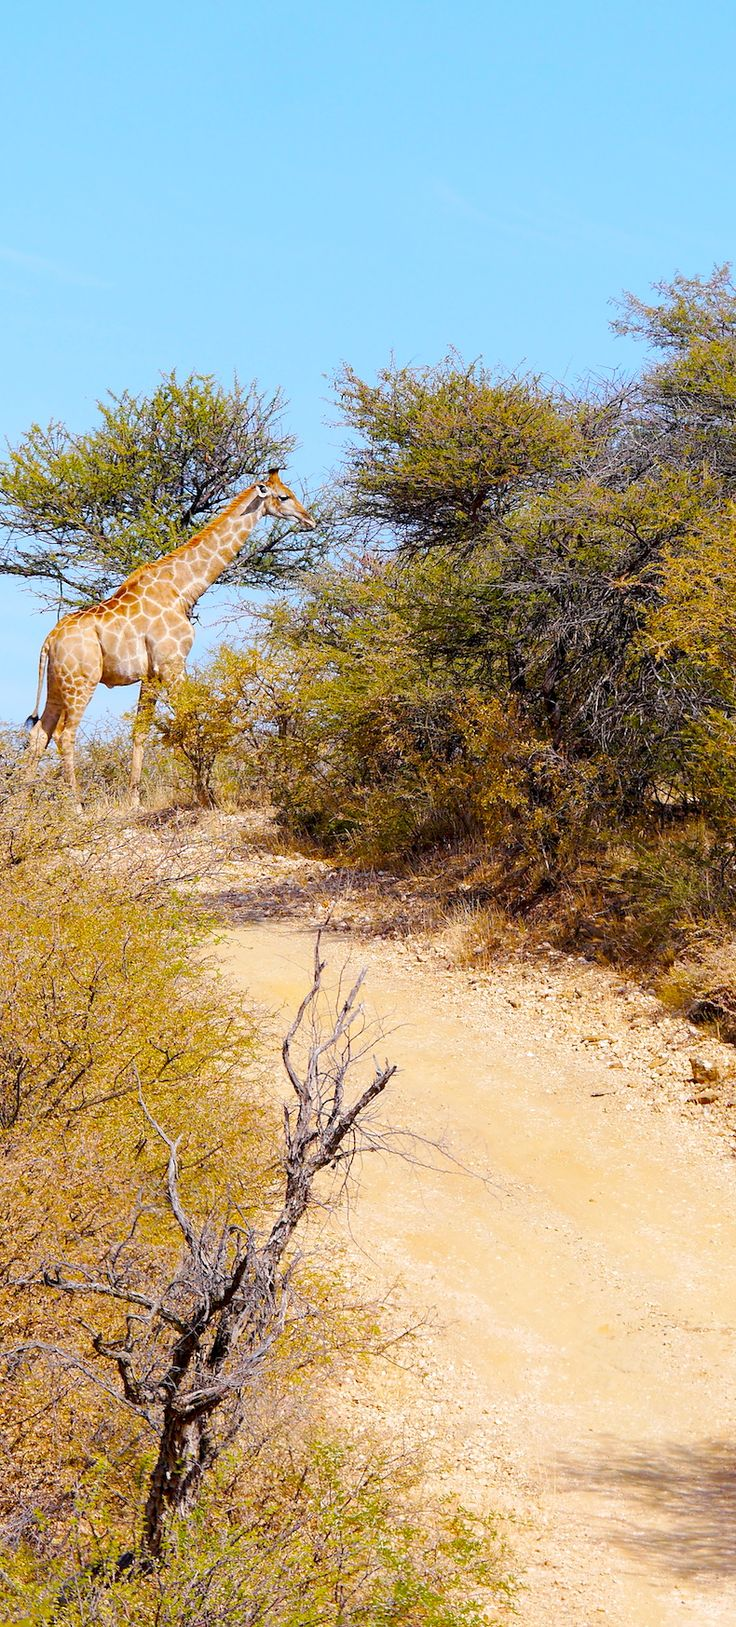 Giraffe Roadview , #Wildlife #travel #Namibia #Roadtrips